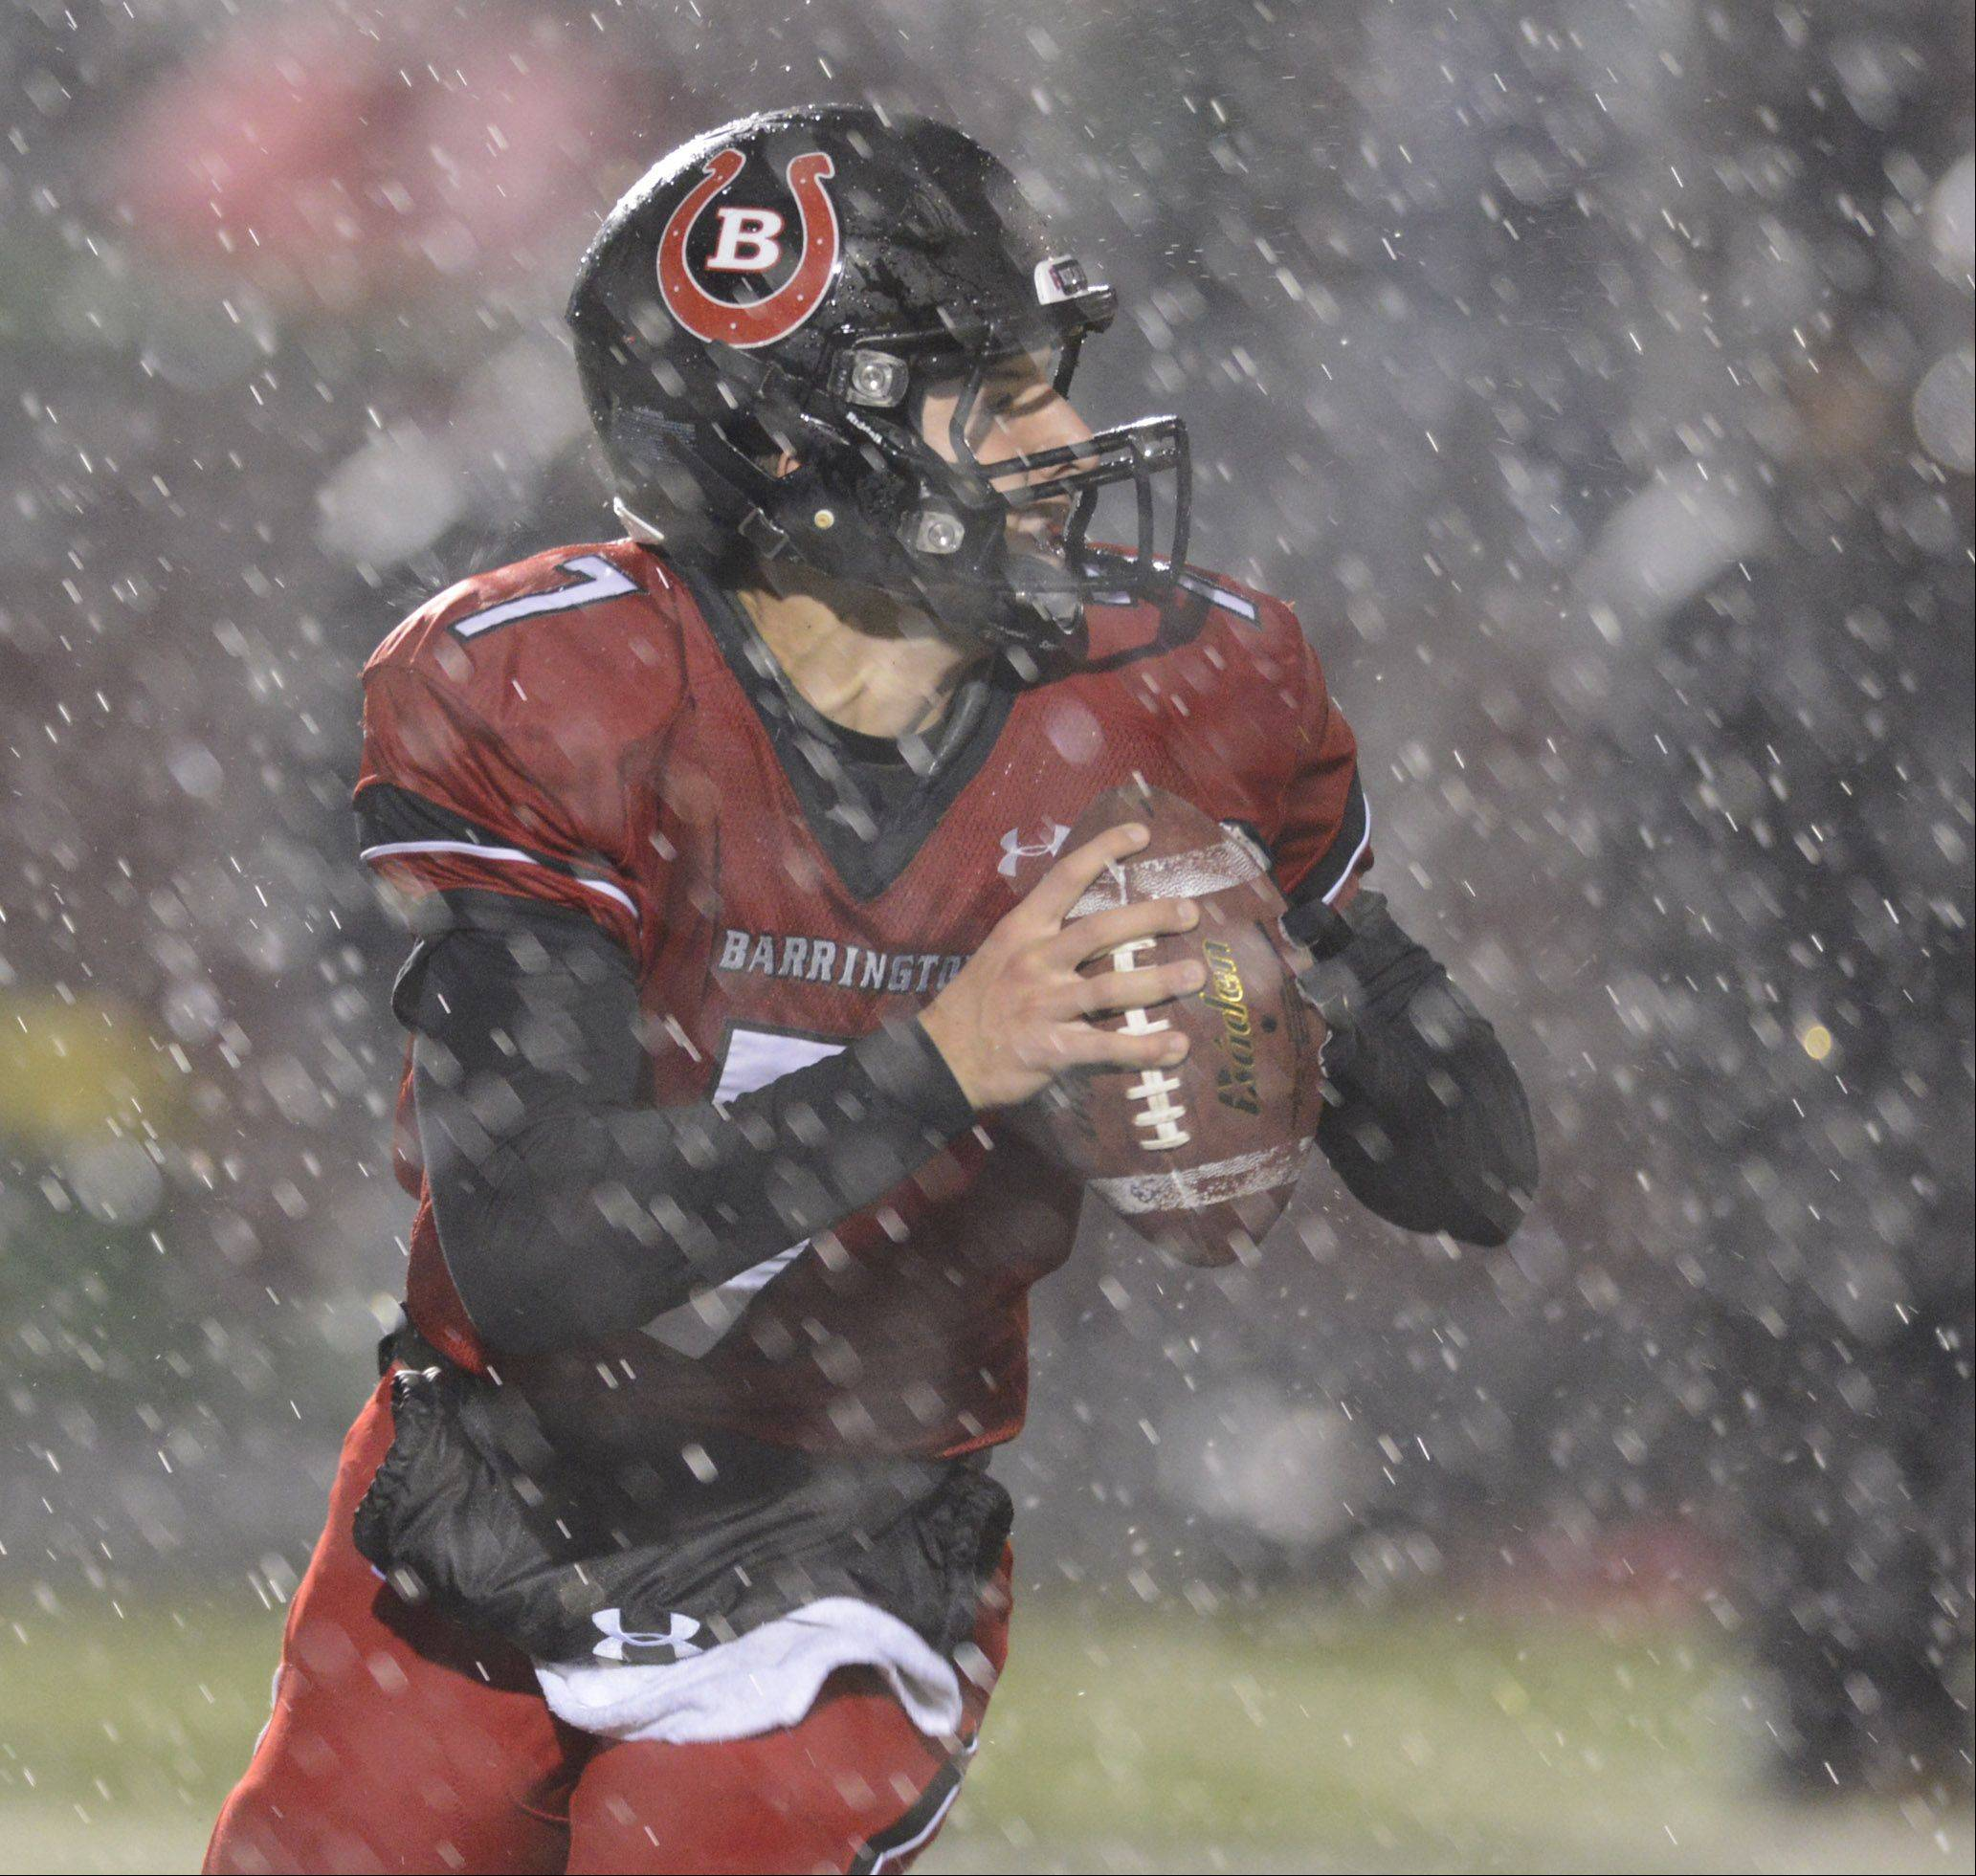 Barrington quarterback Daniel Kubiak looks to pass in pouring rain during Saturday's football game against Stevenson.